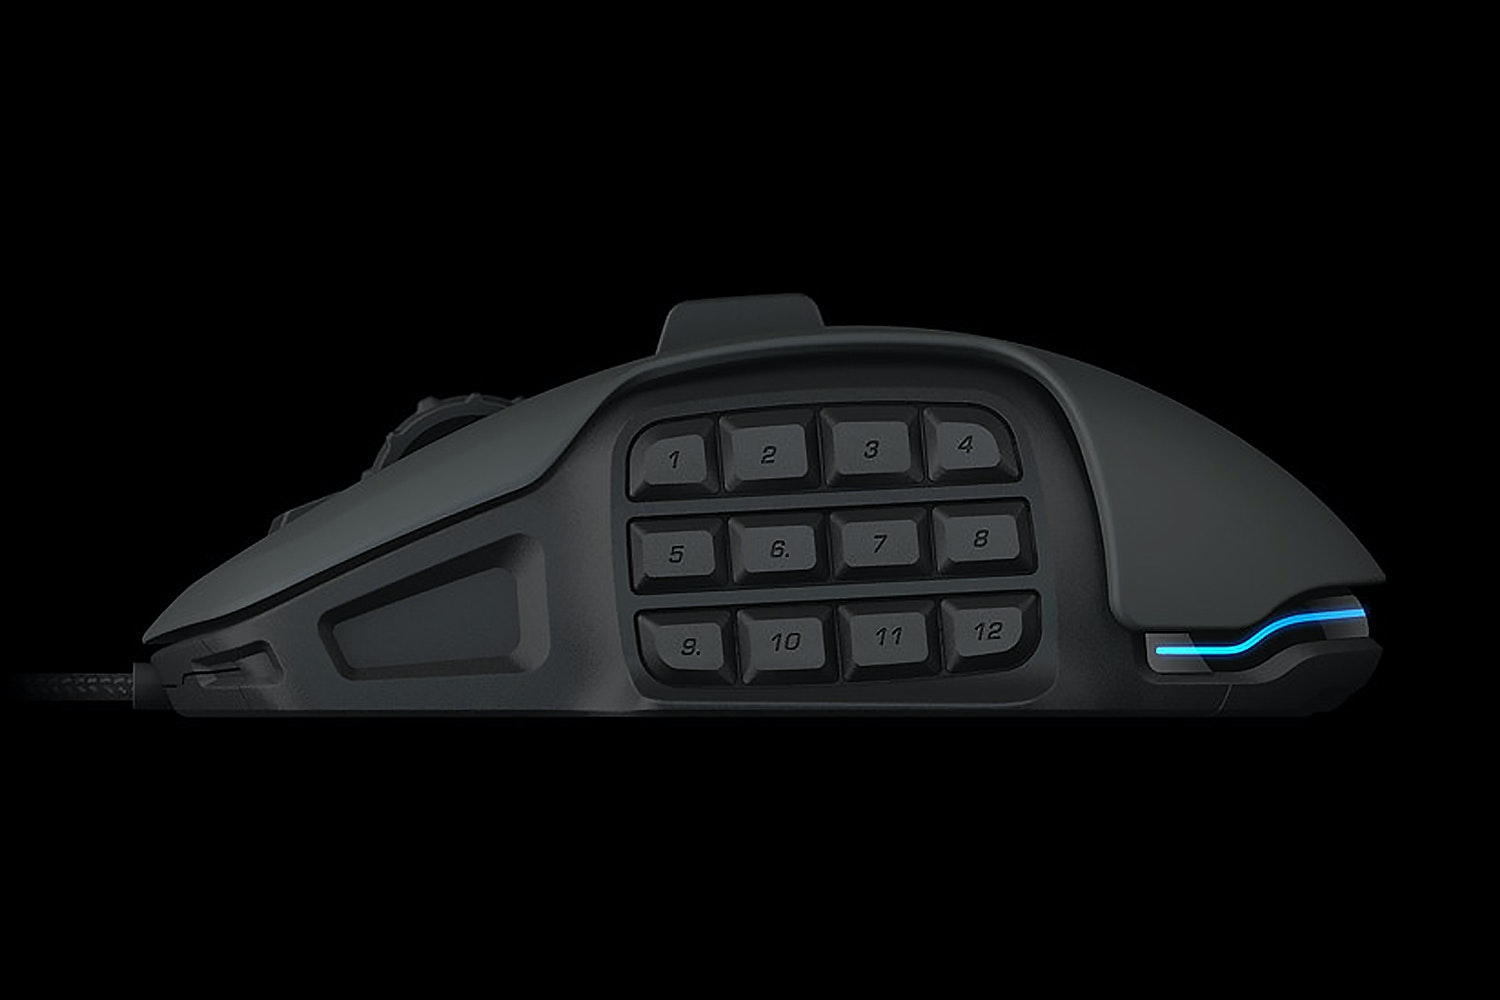 Roccat Tyon Laser & Nyth MMO Gaming Mice